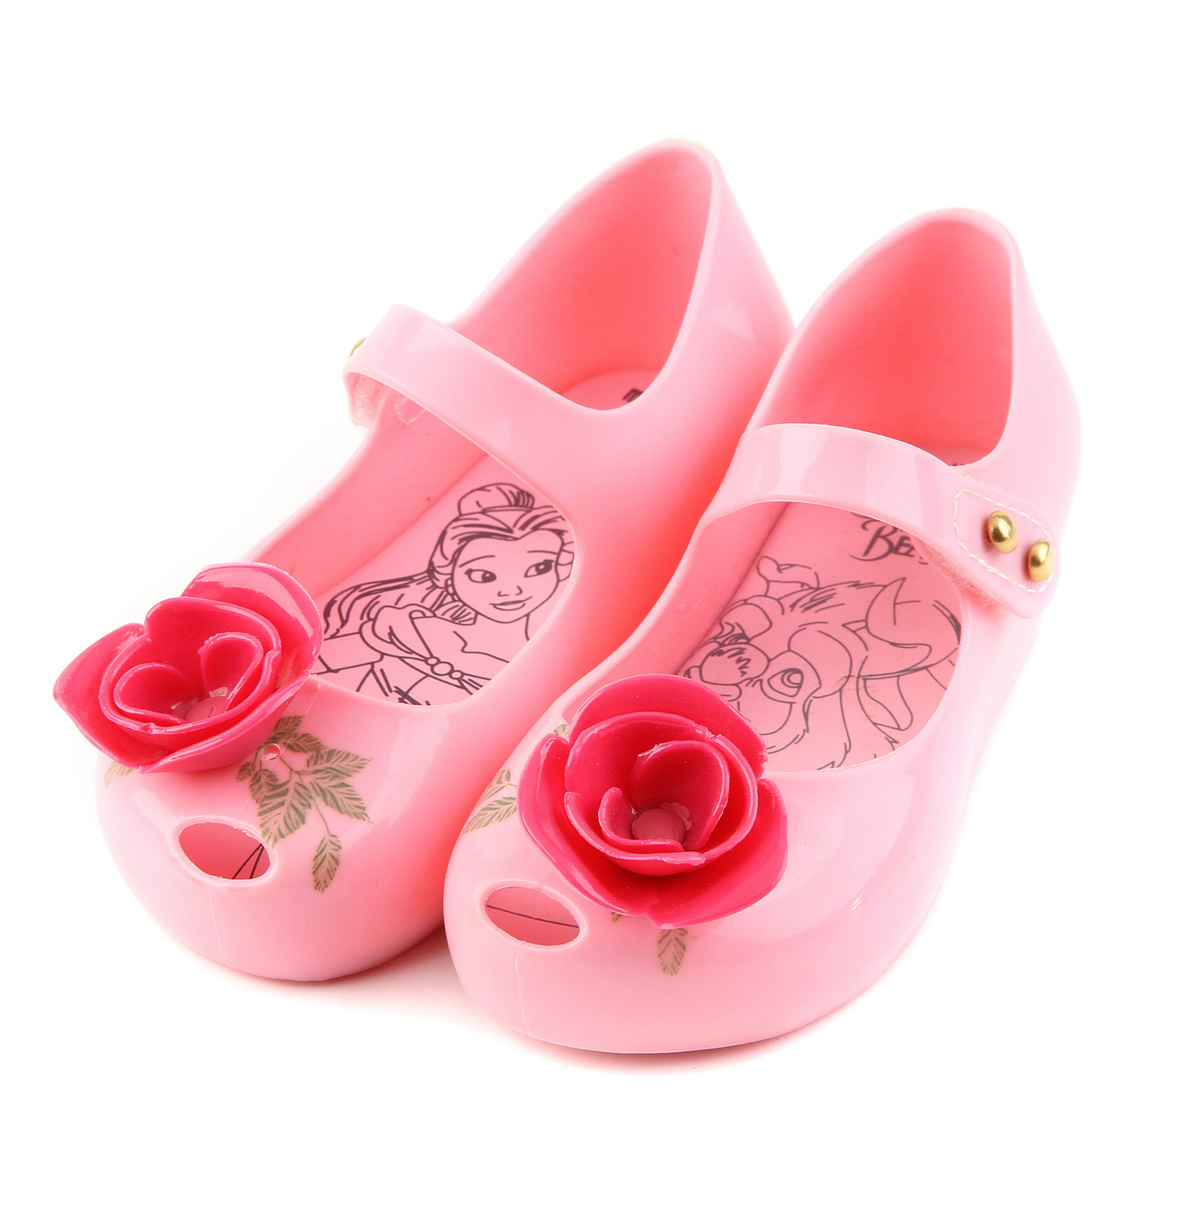 d71e0bf84522 Mini Melissa Children Fahsion Kids Casual Cute Princess Flowers Hollow  Rivets Beach Sneaker Clogs Mules Girls Jelly Shoes Sandal